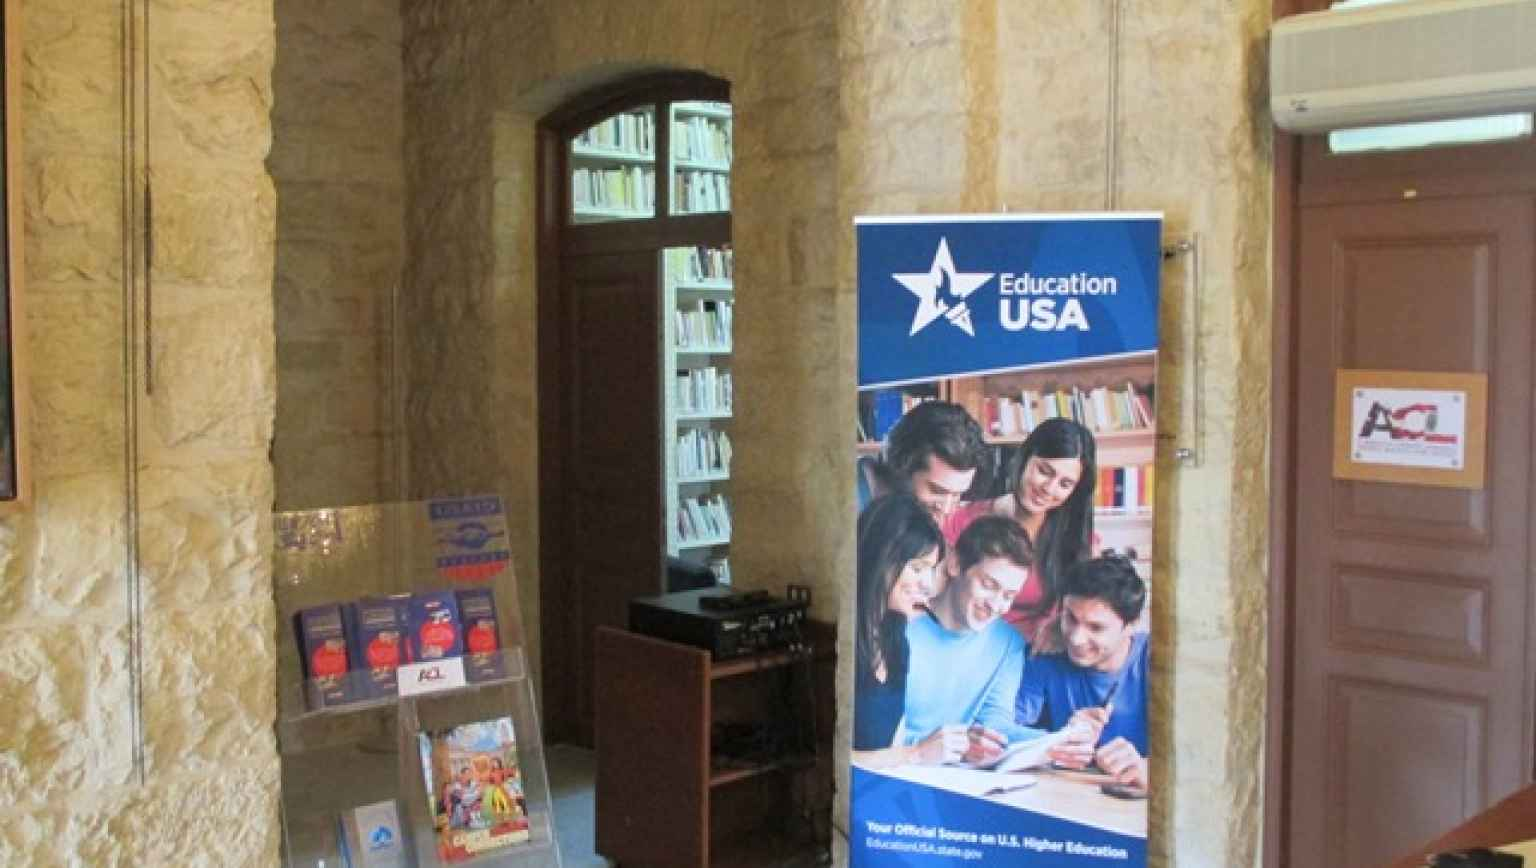 EducationUSA office and advising center